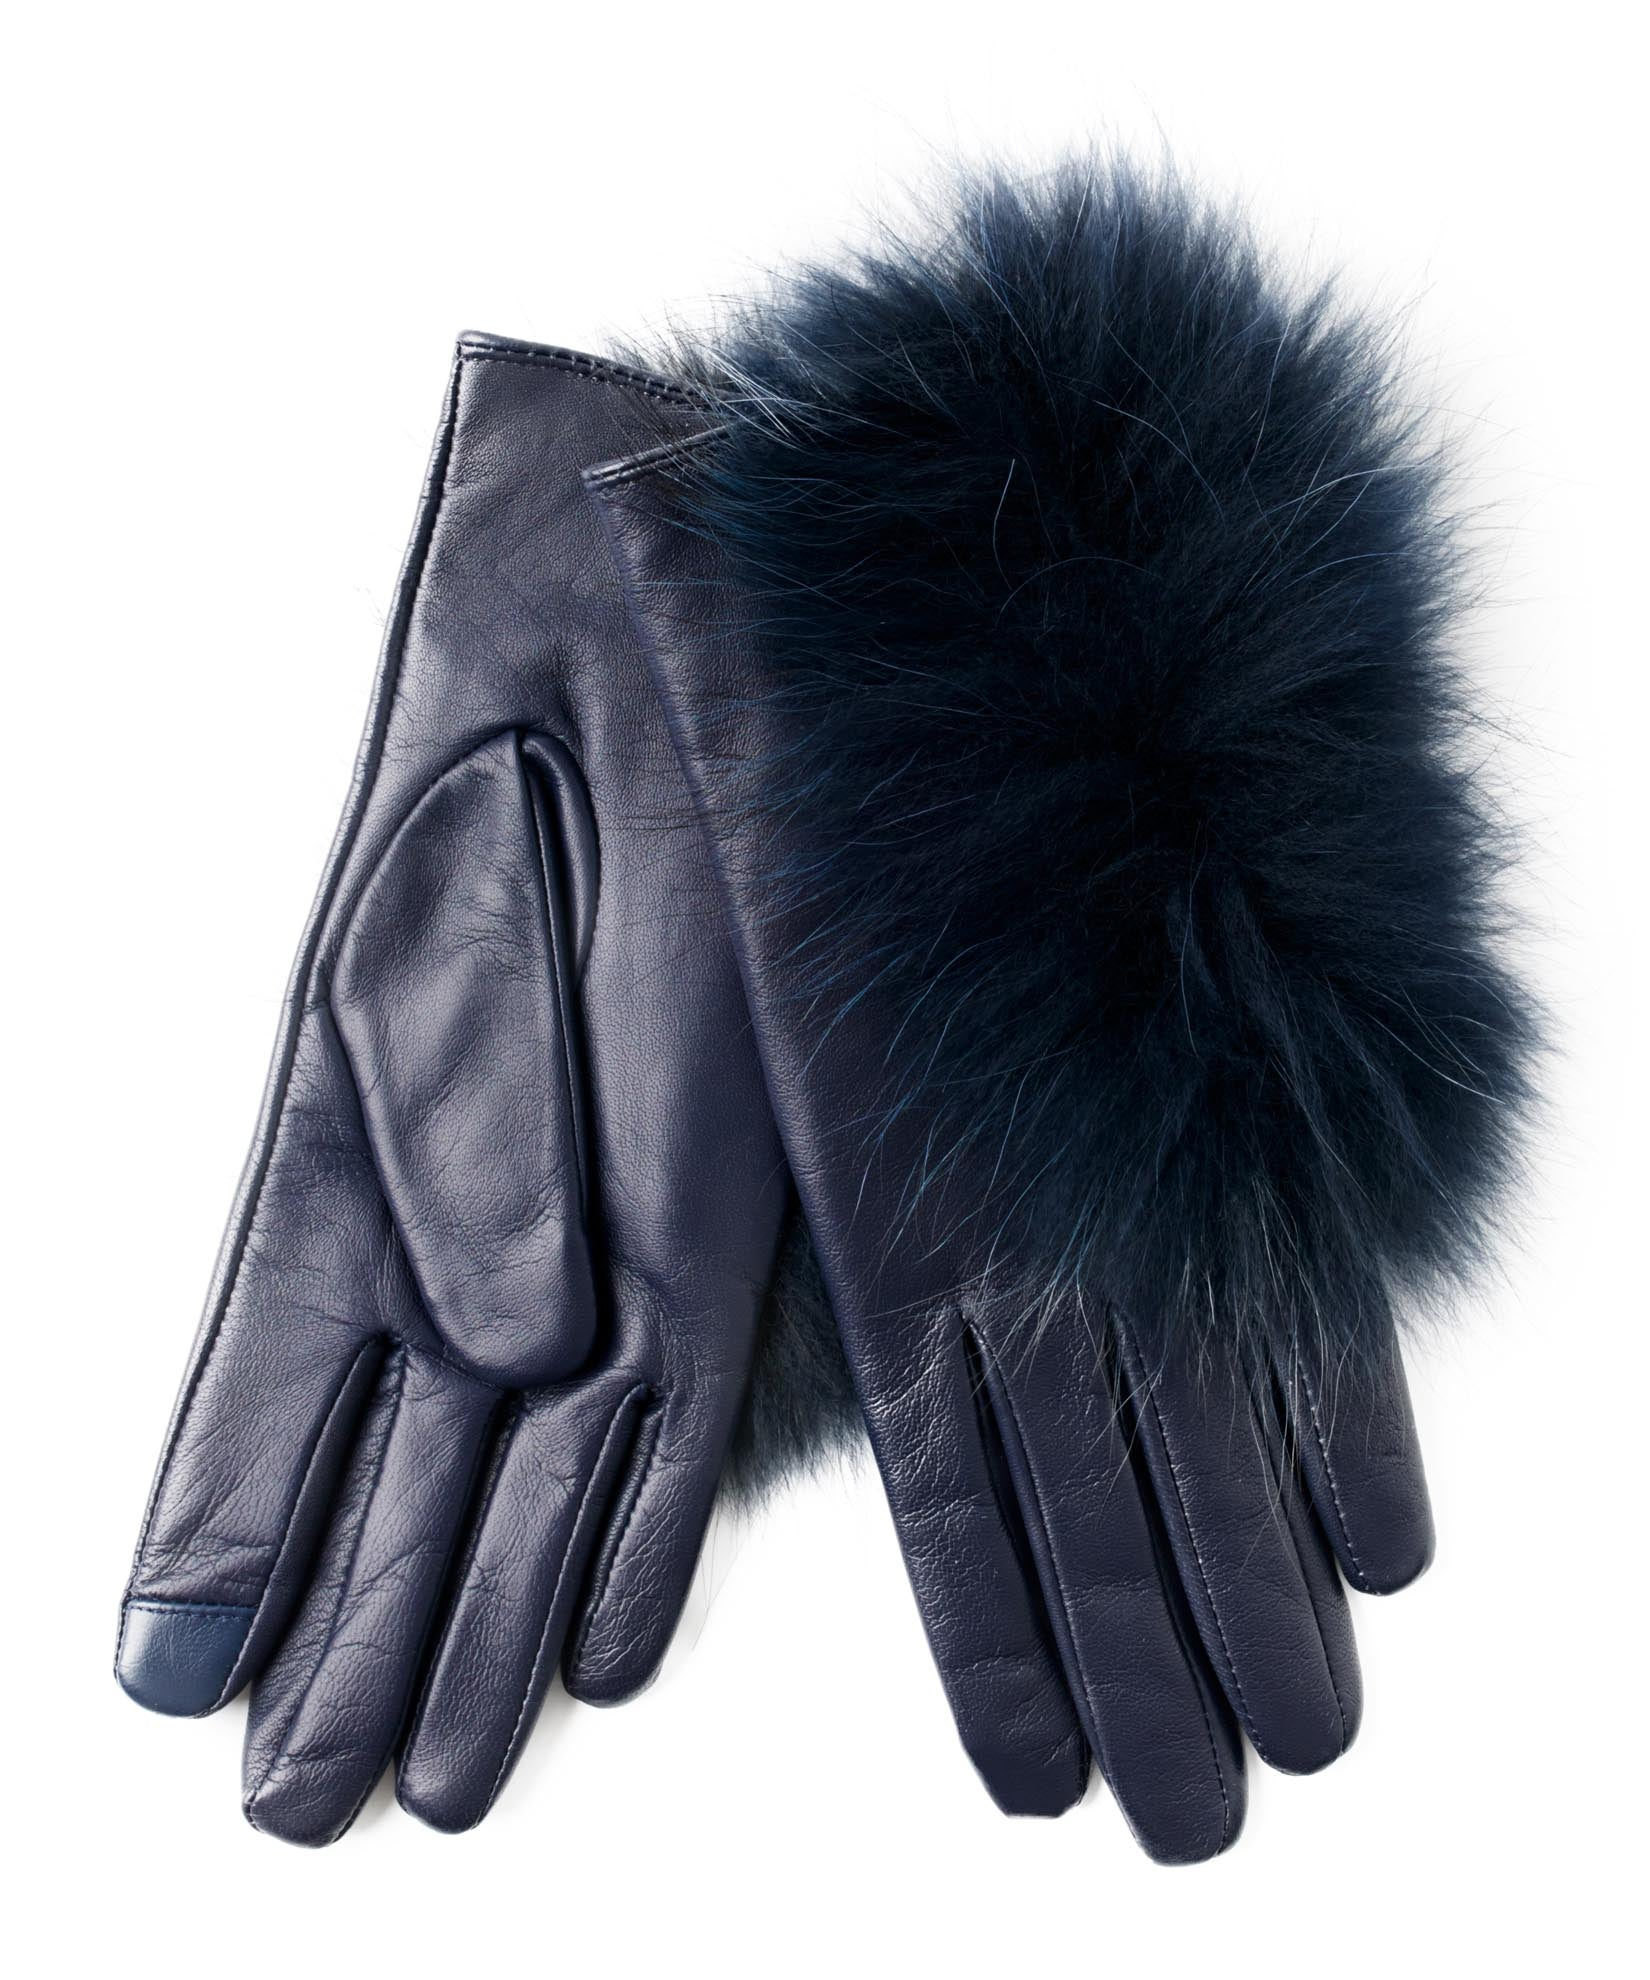 Maritime Navy - Raccoon Fur Glove